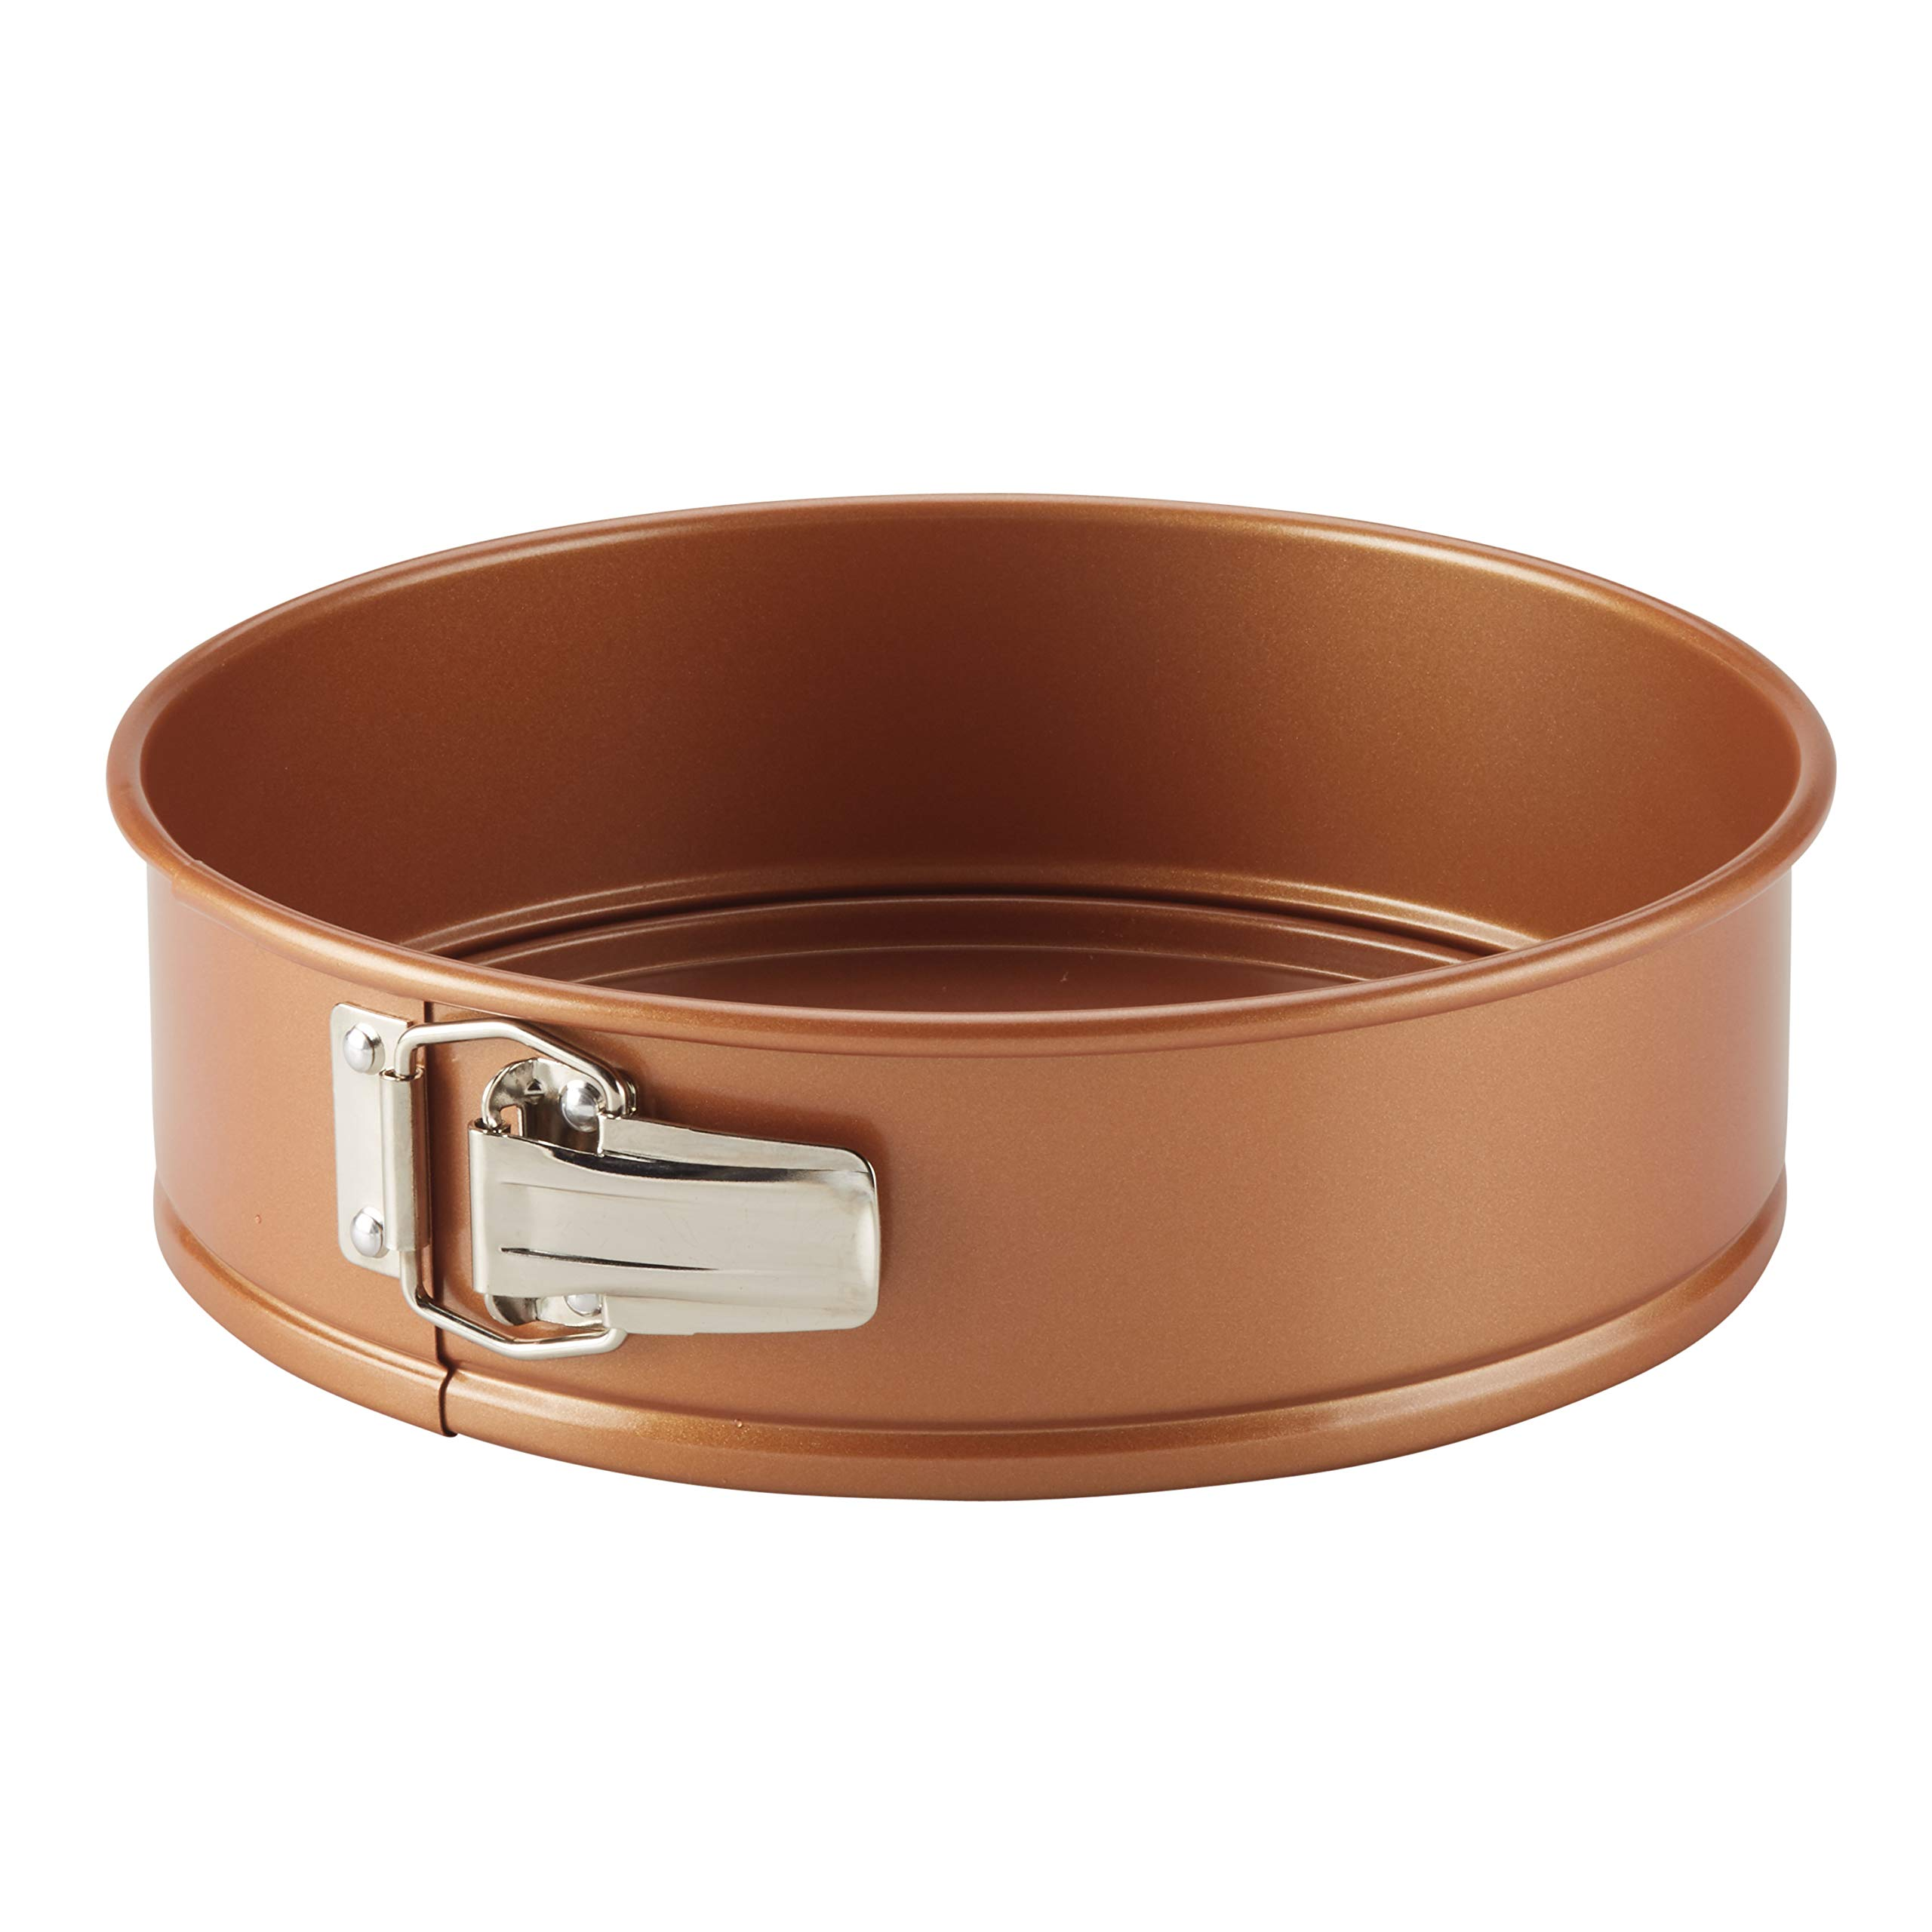 Ayesha Bakeware Spring Form Pan, 9.5-Inch, Copper by Ayesha Curry Kitchenware